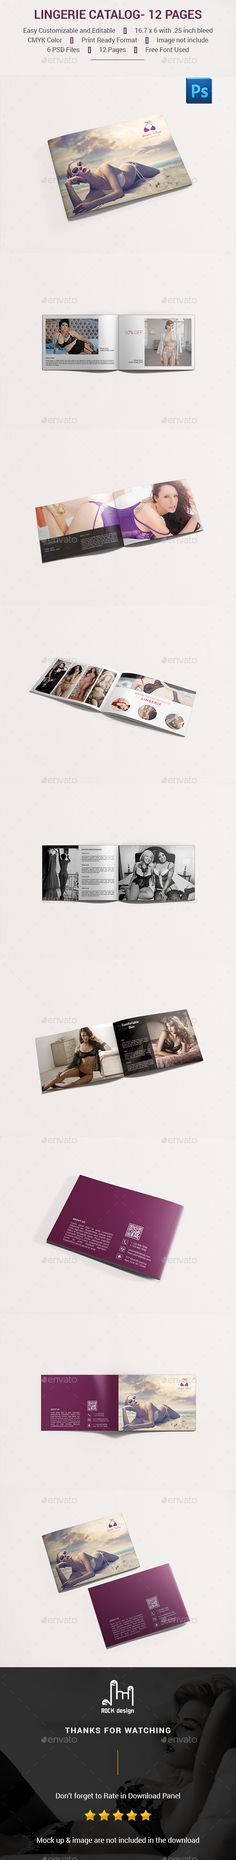 Lingerie Catalog- 12 Pages Template PSD. Download here: http://graphicriver.net/item/lingerie-catalog-12-pages/16427864?ref=ksioks